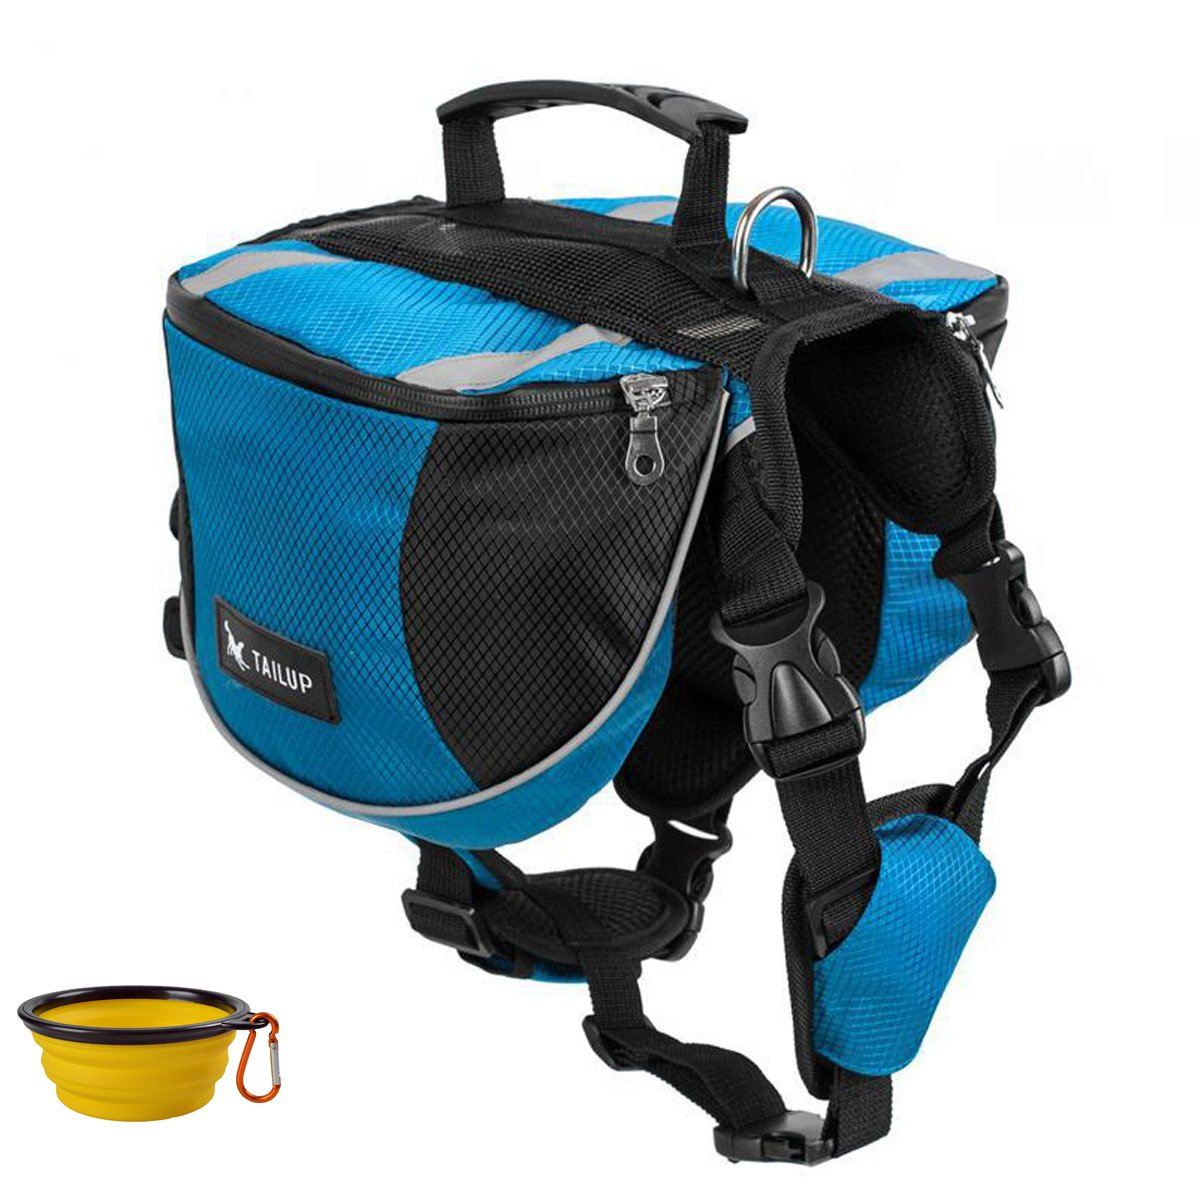 GrayCell Dog Saddlebags Hound Travel Hiking Camping Backpack for Medium Large Dogs (Blue,L) by GrayCell